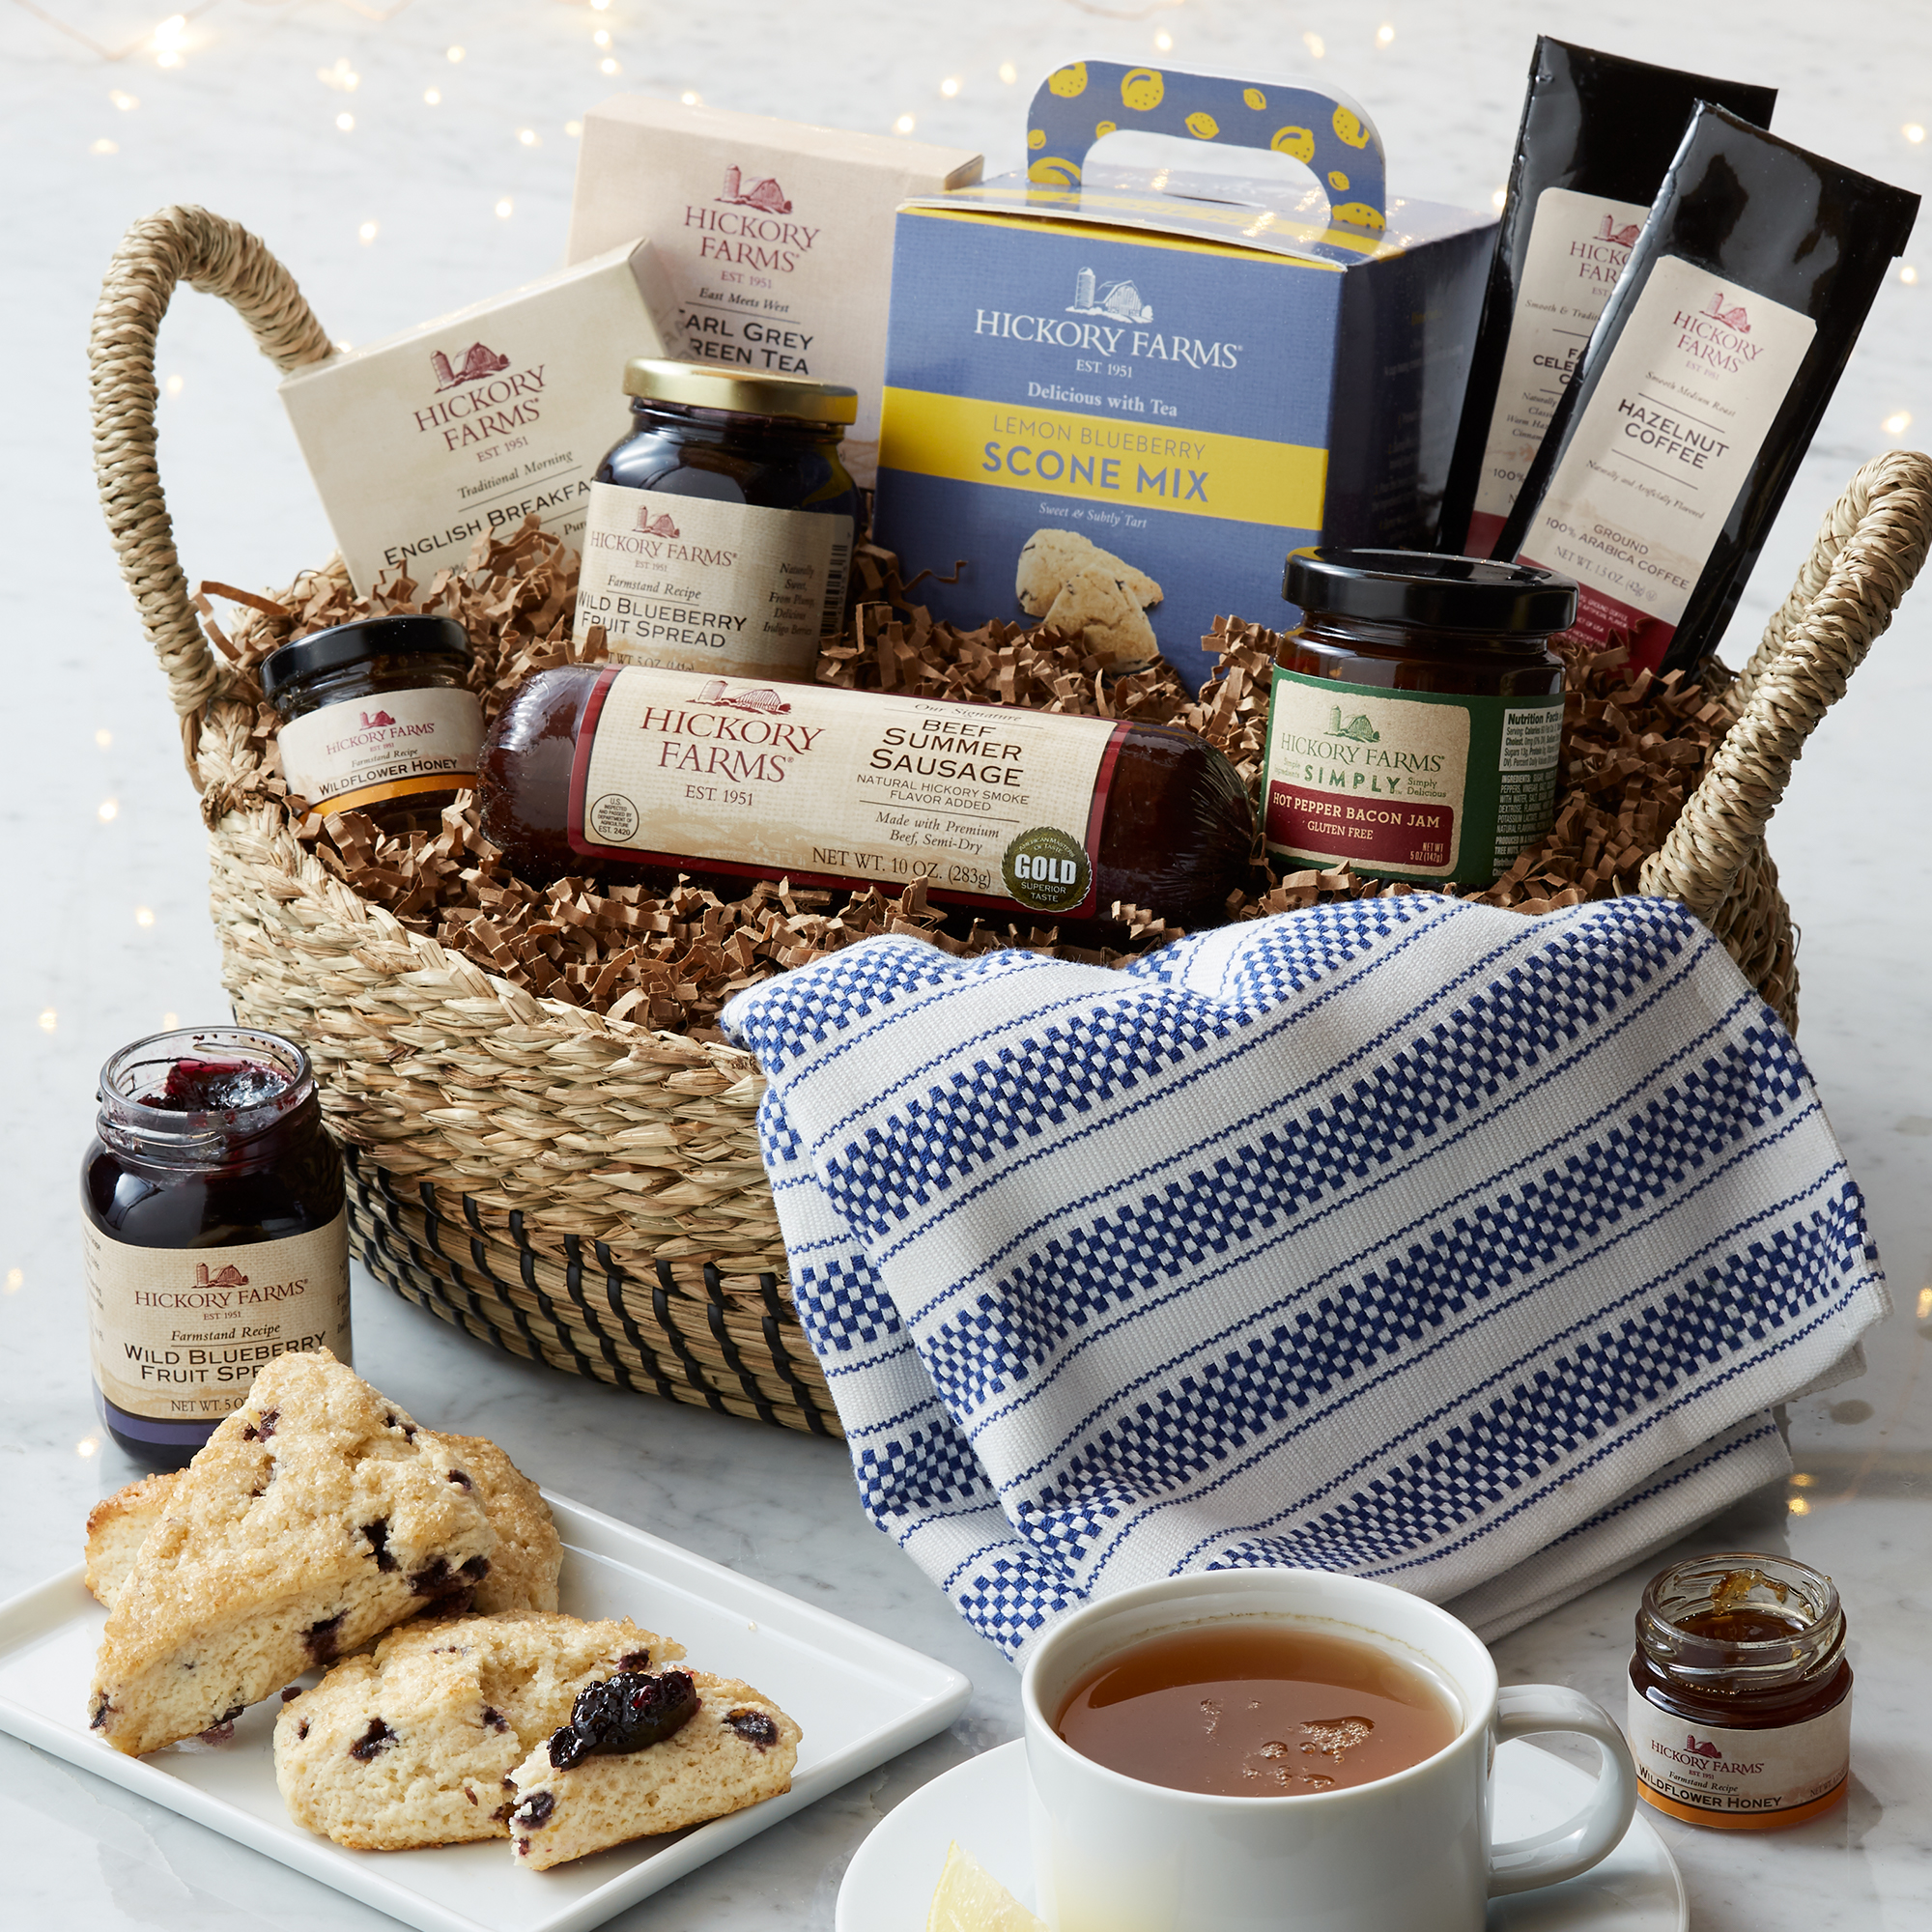 new product gift guide - Hickory Farms Brunch Essentials Gift Basket